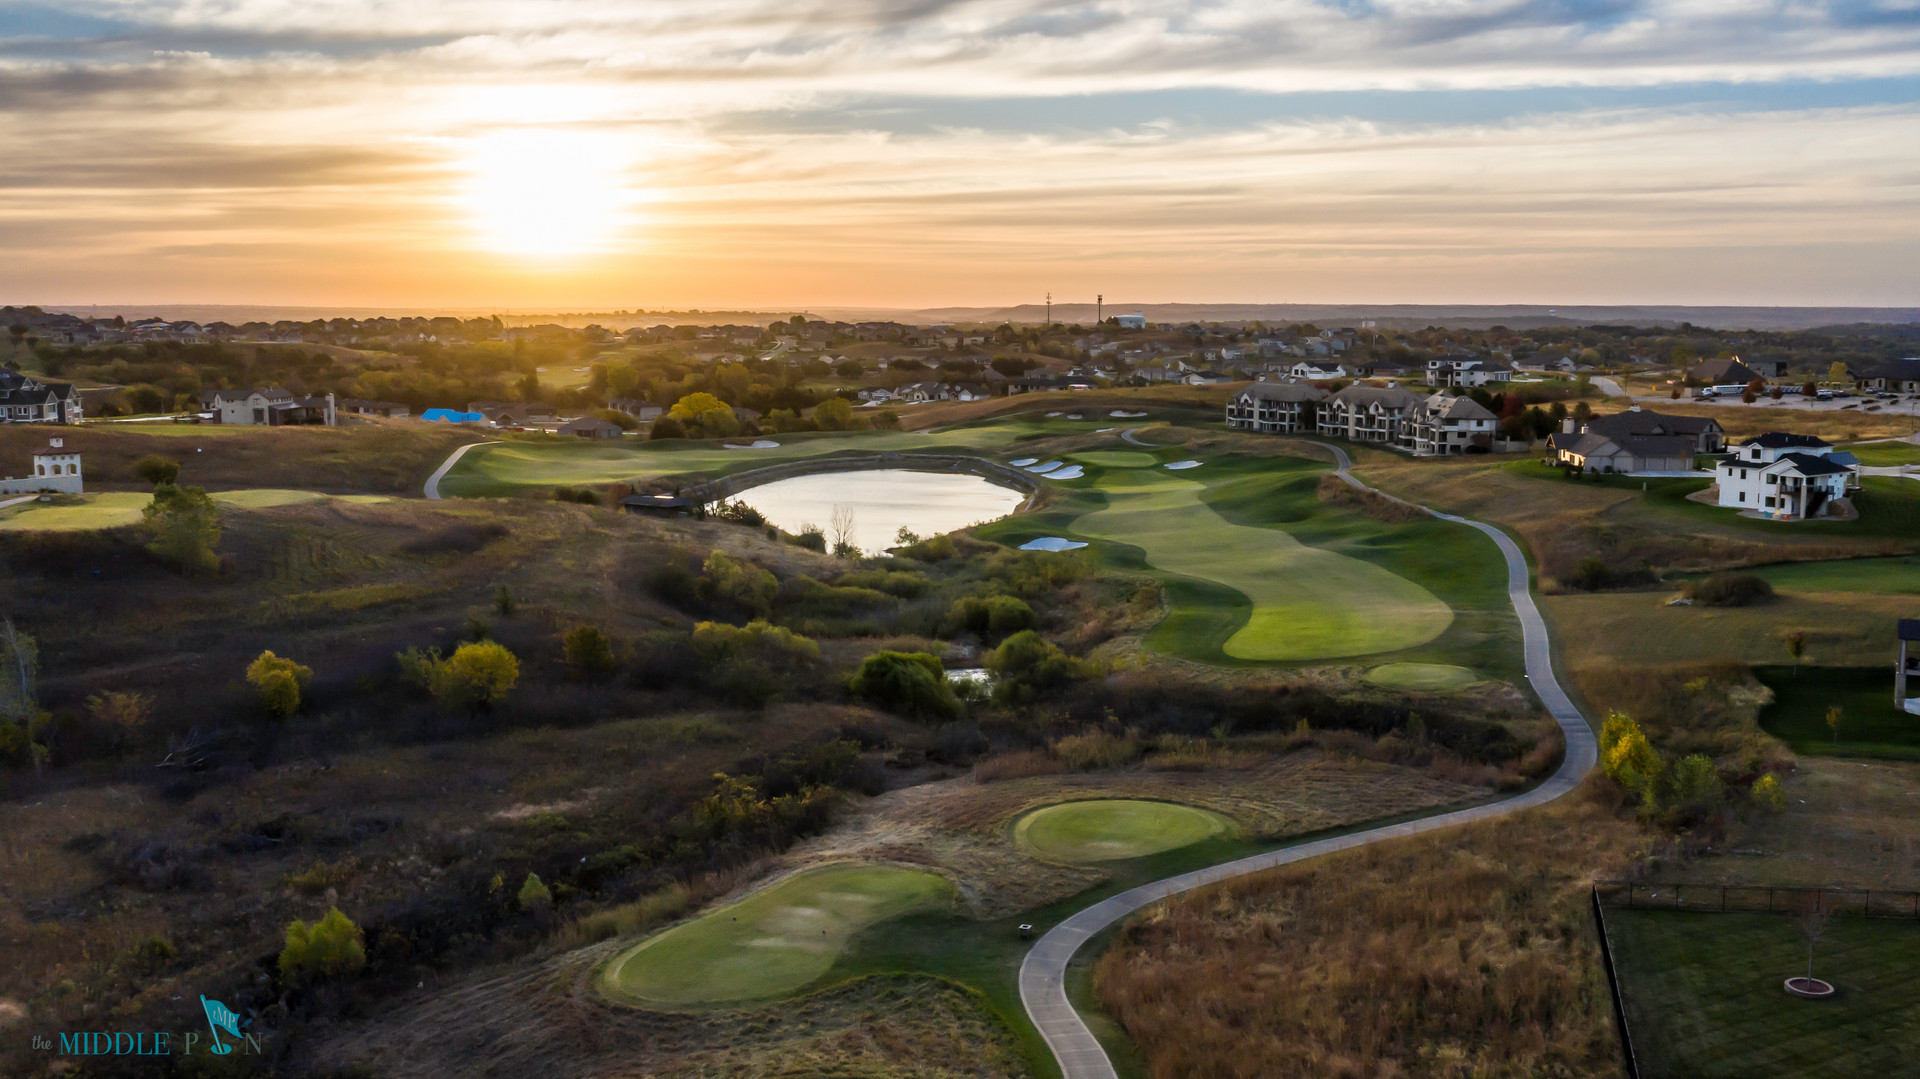 Colbert Hills - Par 4 9th (1 of 1).jpg